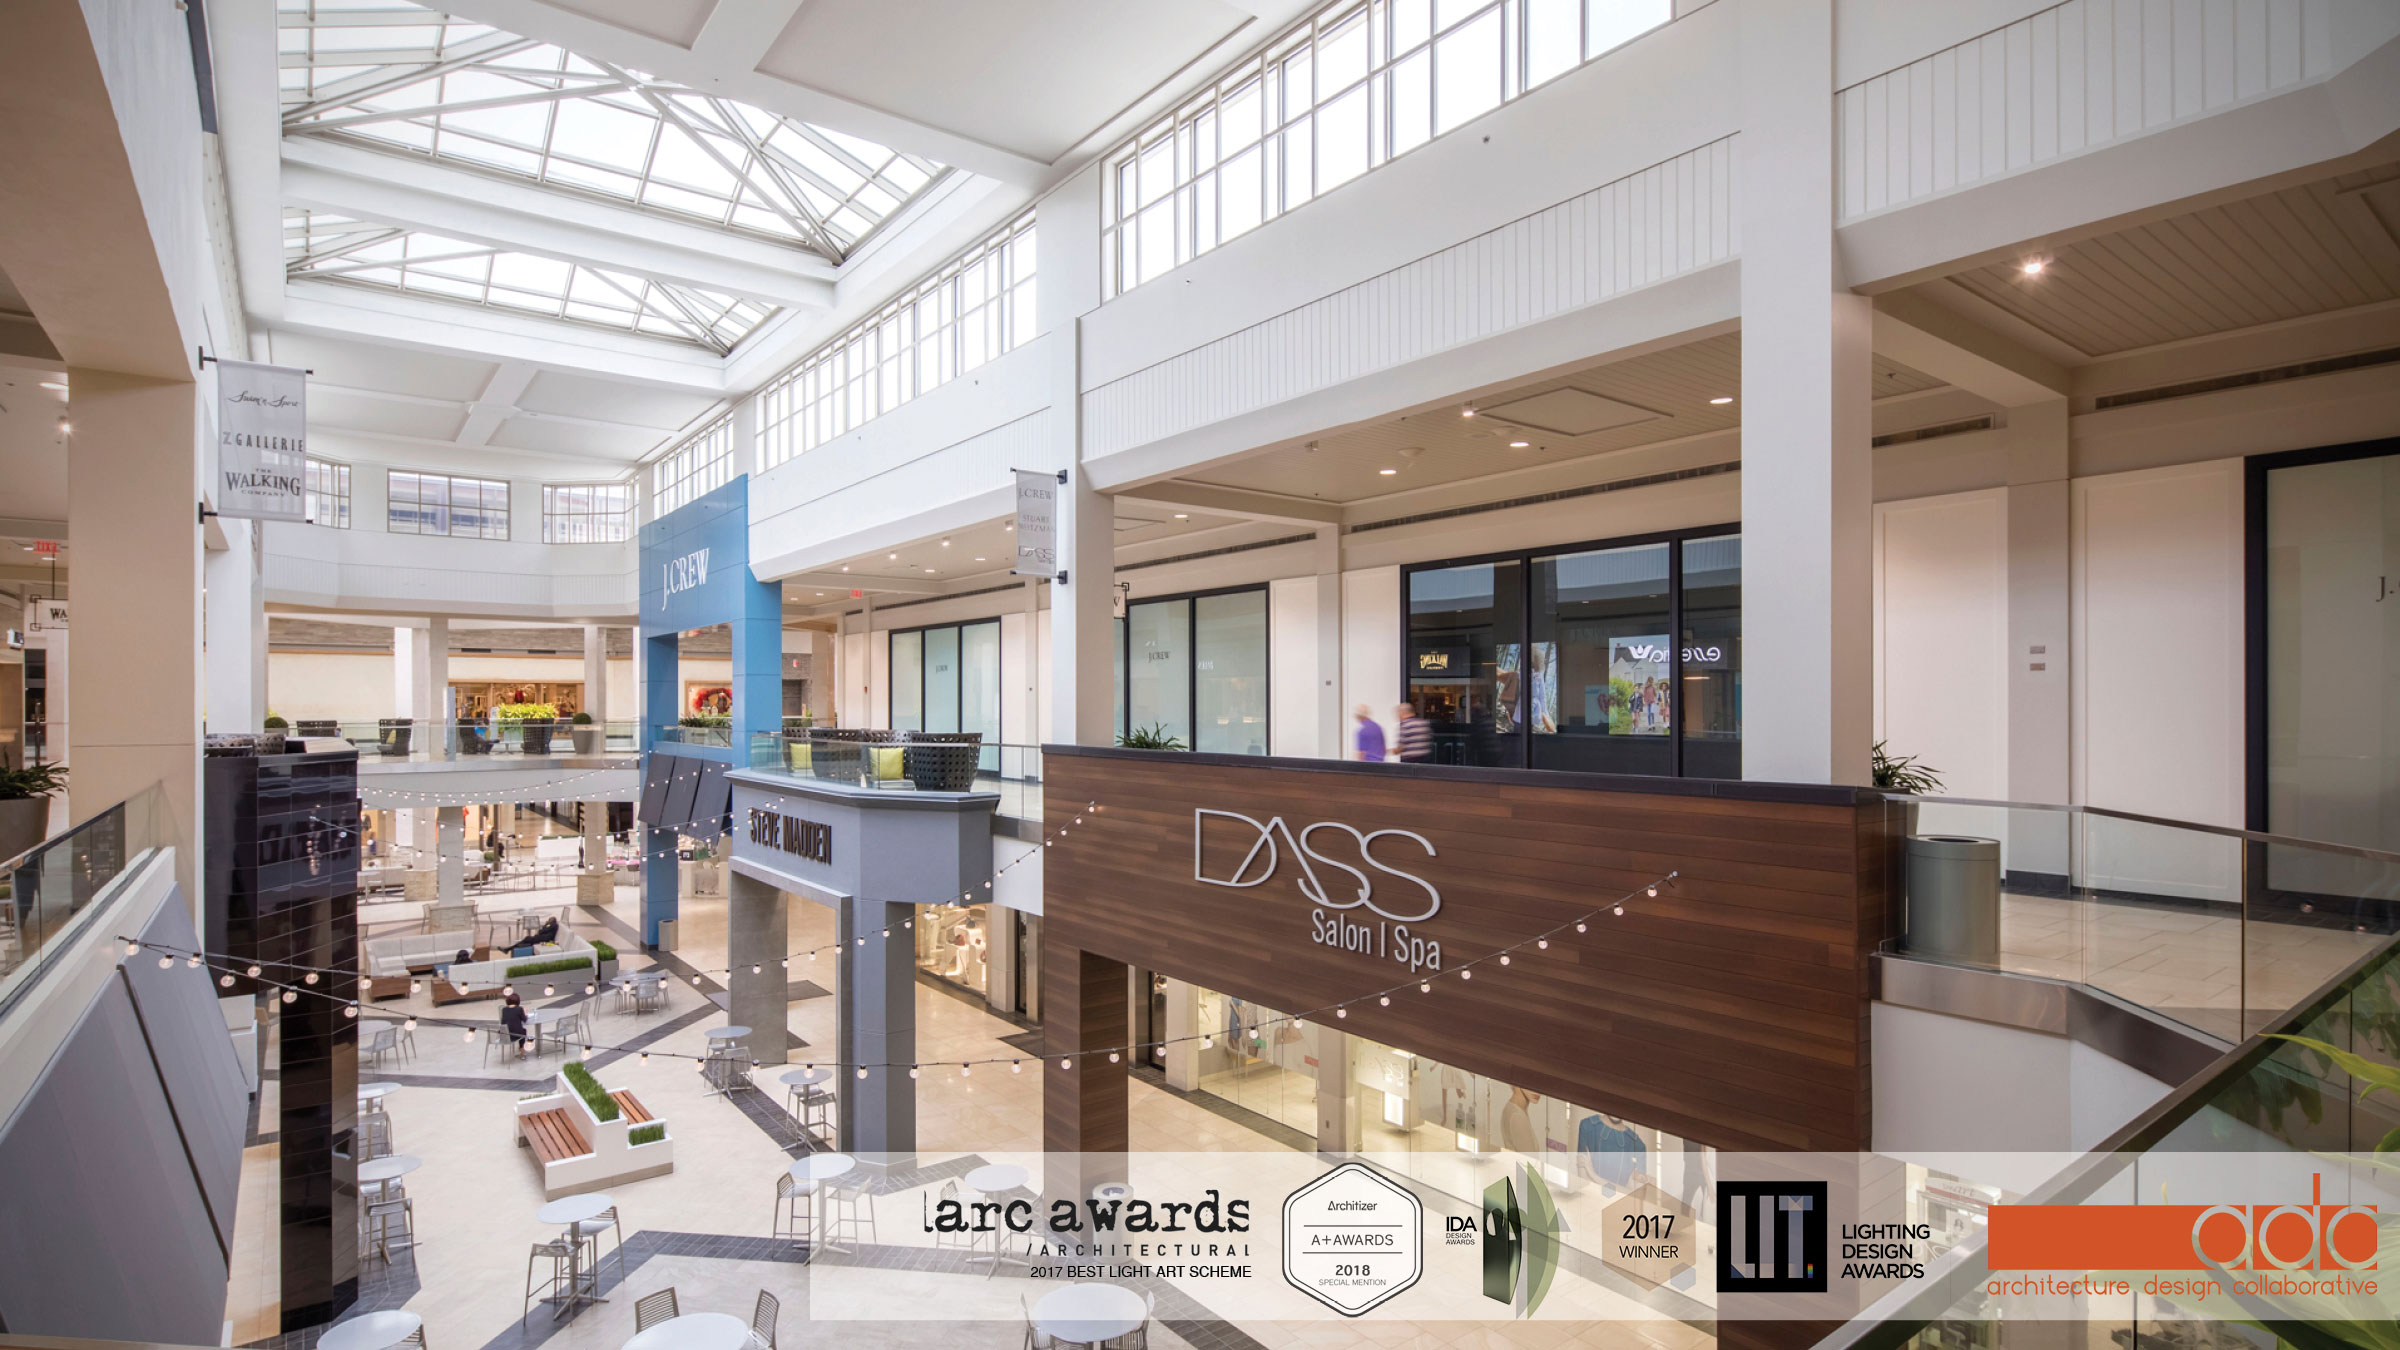 Architecture Design Collaborative (ADC) has worked on this exciting Mall Renovation project in Atlanta, GA since 2014. Led by Craig Chinn, AIA and Alexandra Gomez the project is designed to transform a traditional interior mall into the feeling of an outdoor shopping destination. The finishes, colors, and materials that the shoppers would experience needed to represent the outside environment. We worked closely with vendors like Mirage Tile, Afalux Tile, and American Import Tile. This attention to detail is what makes this such a successful project for ADC and the Perimeter Mall. Architecture Design Collaborative was integral in all aspects of this Mall Renovation project with designing and directing all of the architectural changes, exterior entrance changes, signage, custom lighting as well as regular mall lighting, restroom design and renovation, FF&E and all other aspects. ADC has a long history of Mall Renovations as well as Retail projects across the country.